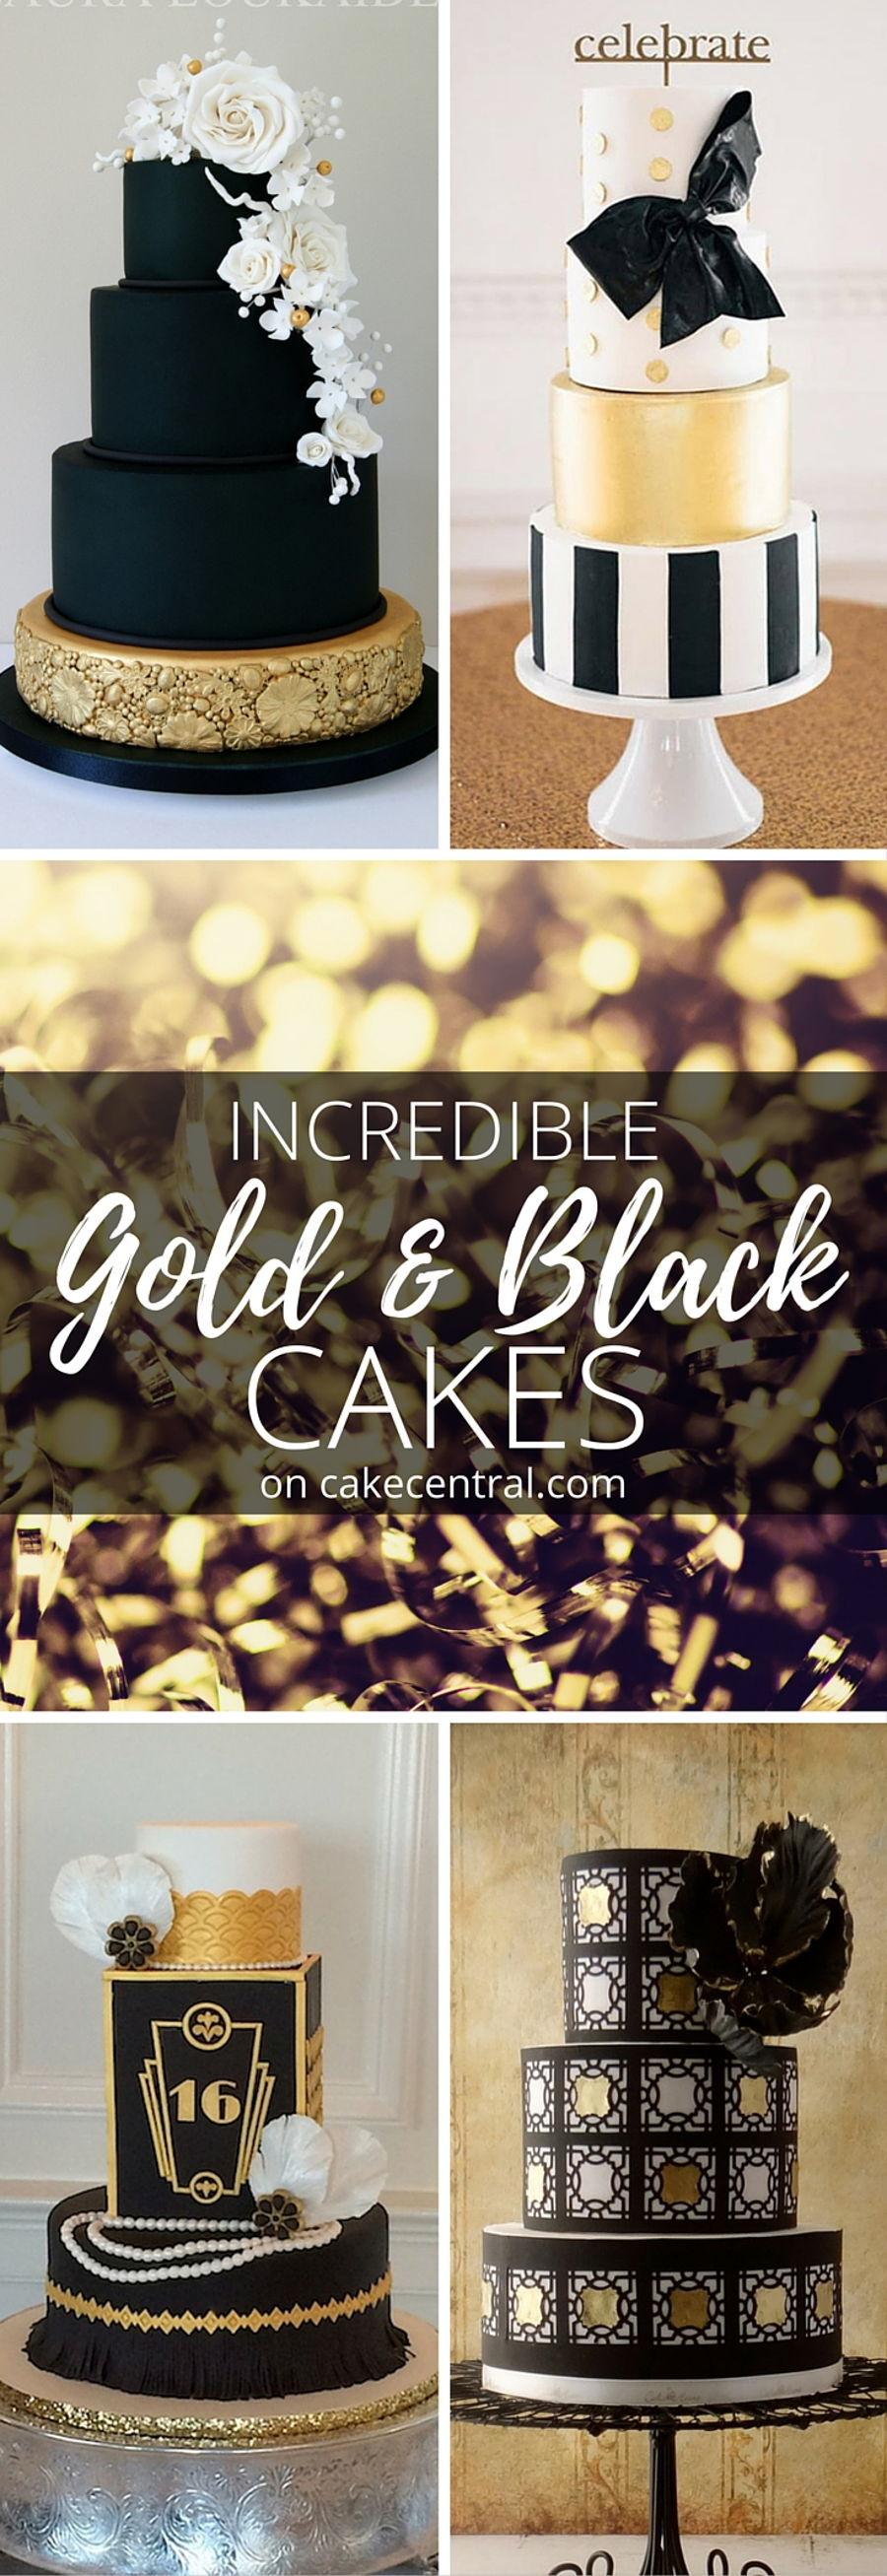 Unconventionally Beautiful  Black and Gold Wedding Cakes  CakeCentralcom